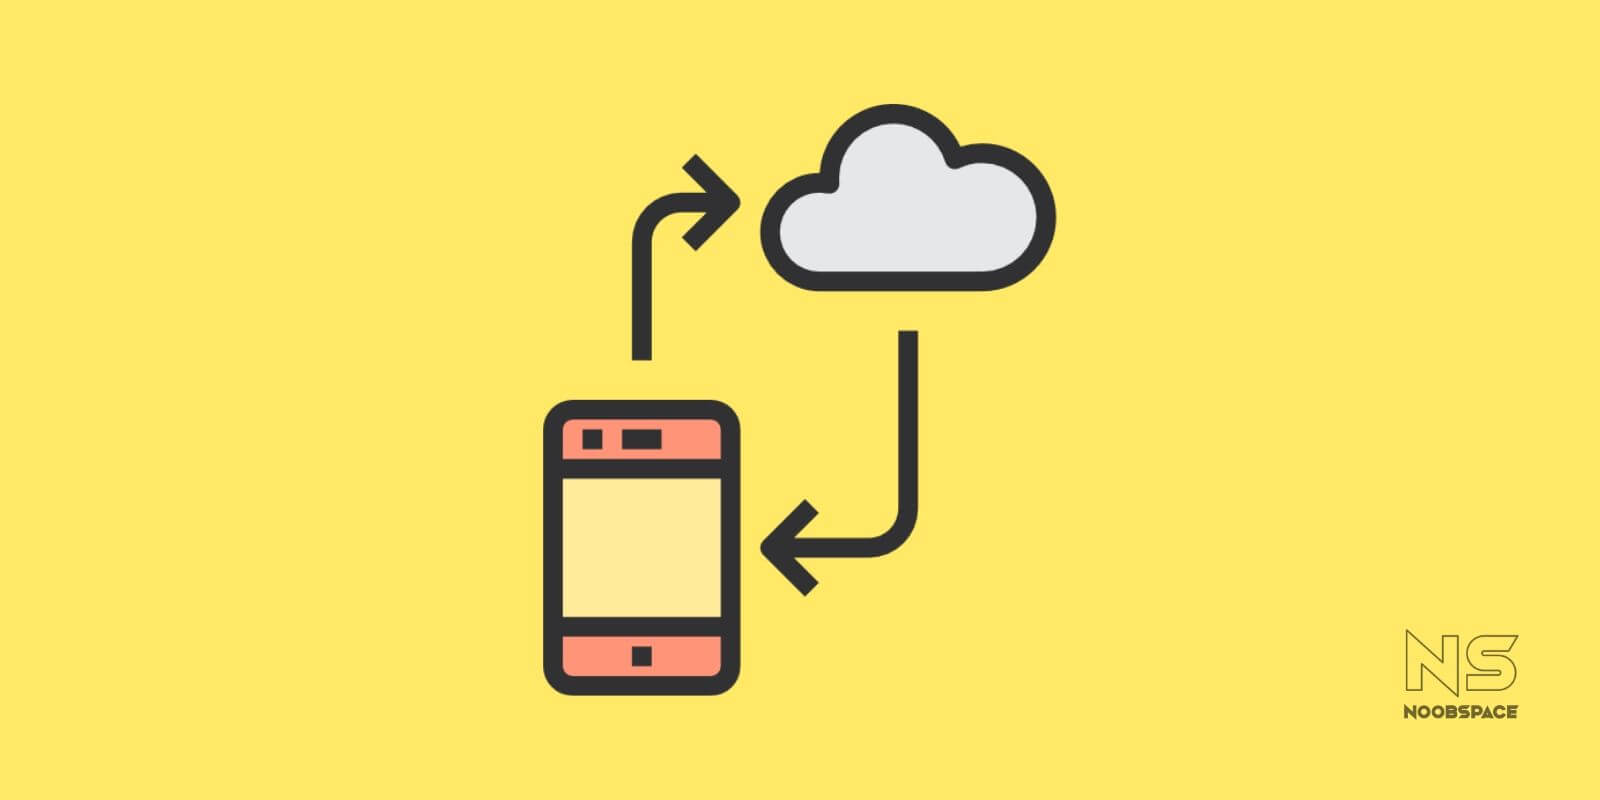 An illustration of a cloud and a smartphone in sync